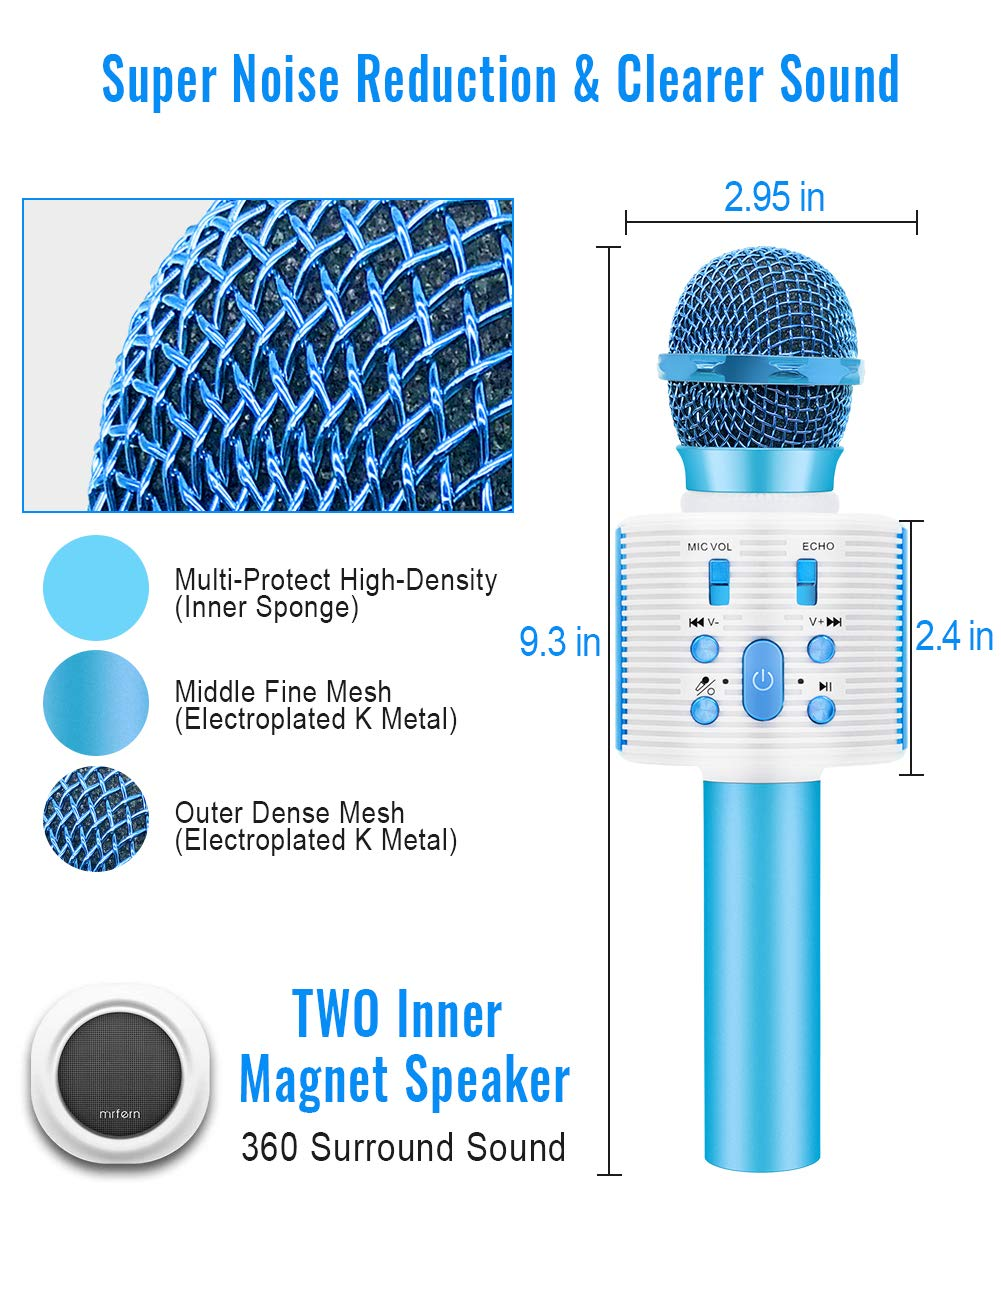 Wireless Karaoke Microphone with Speaker Pro, 3-in-1 Portable Handheld Karaoke Mic Home Party Birthday Gifts for Kids Speaker Machine for Android/ PC /phone(Blue) by weird tails (Image #4)